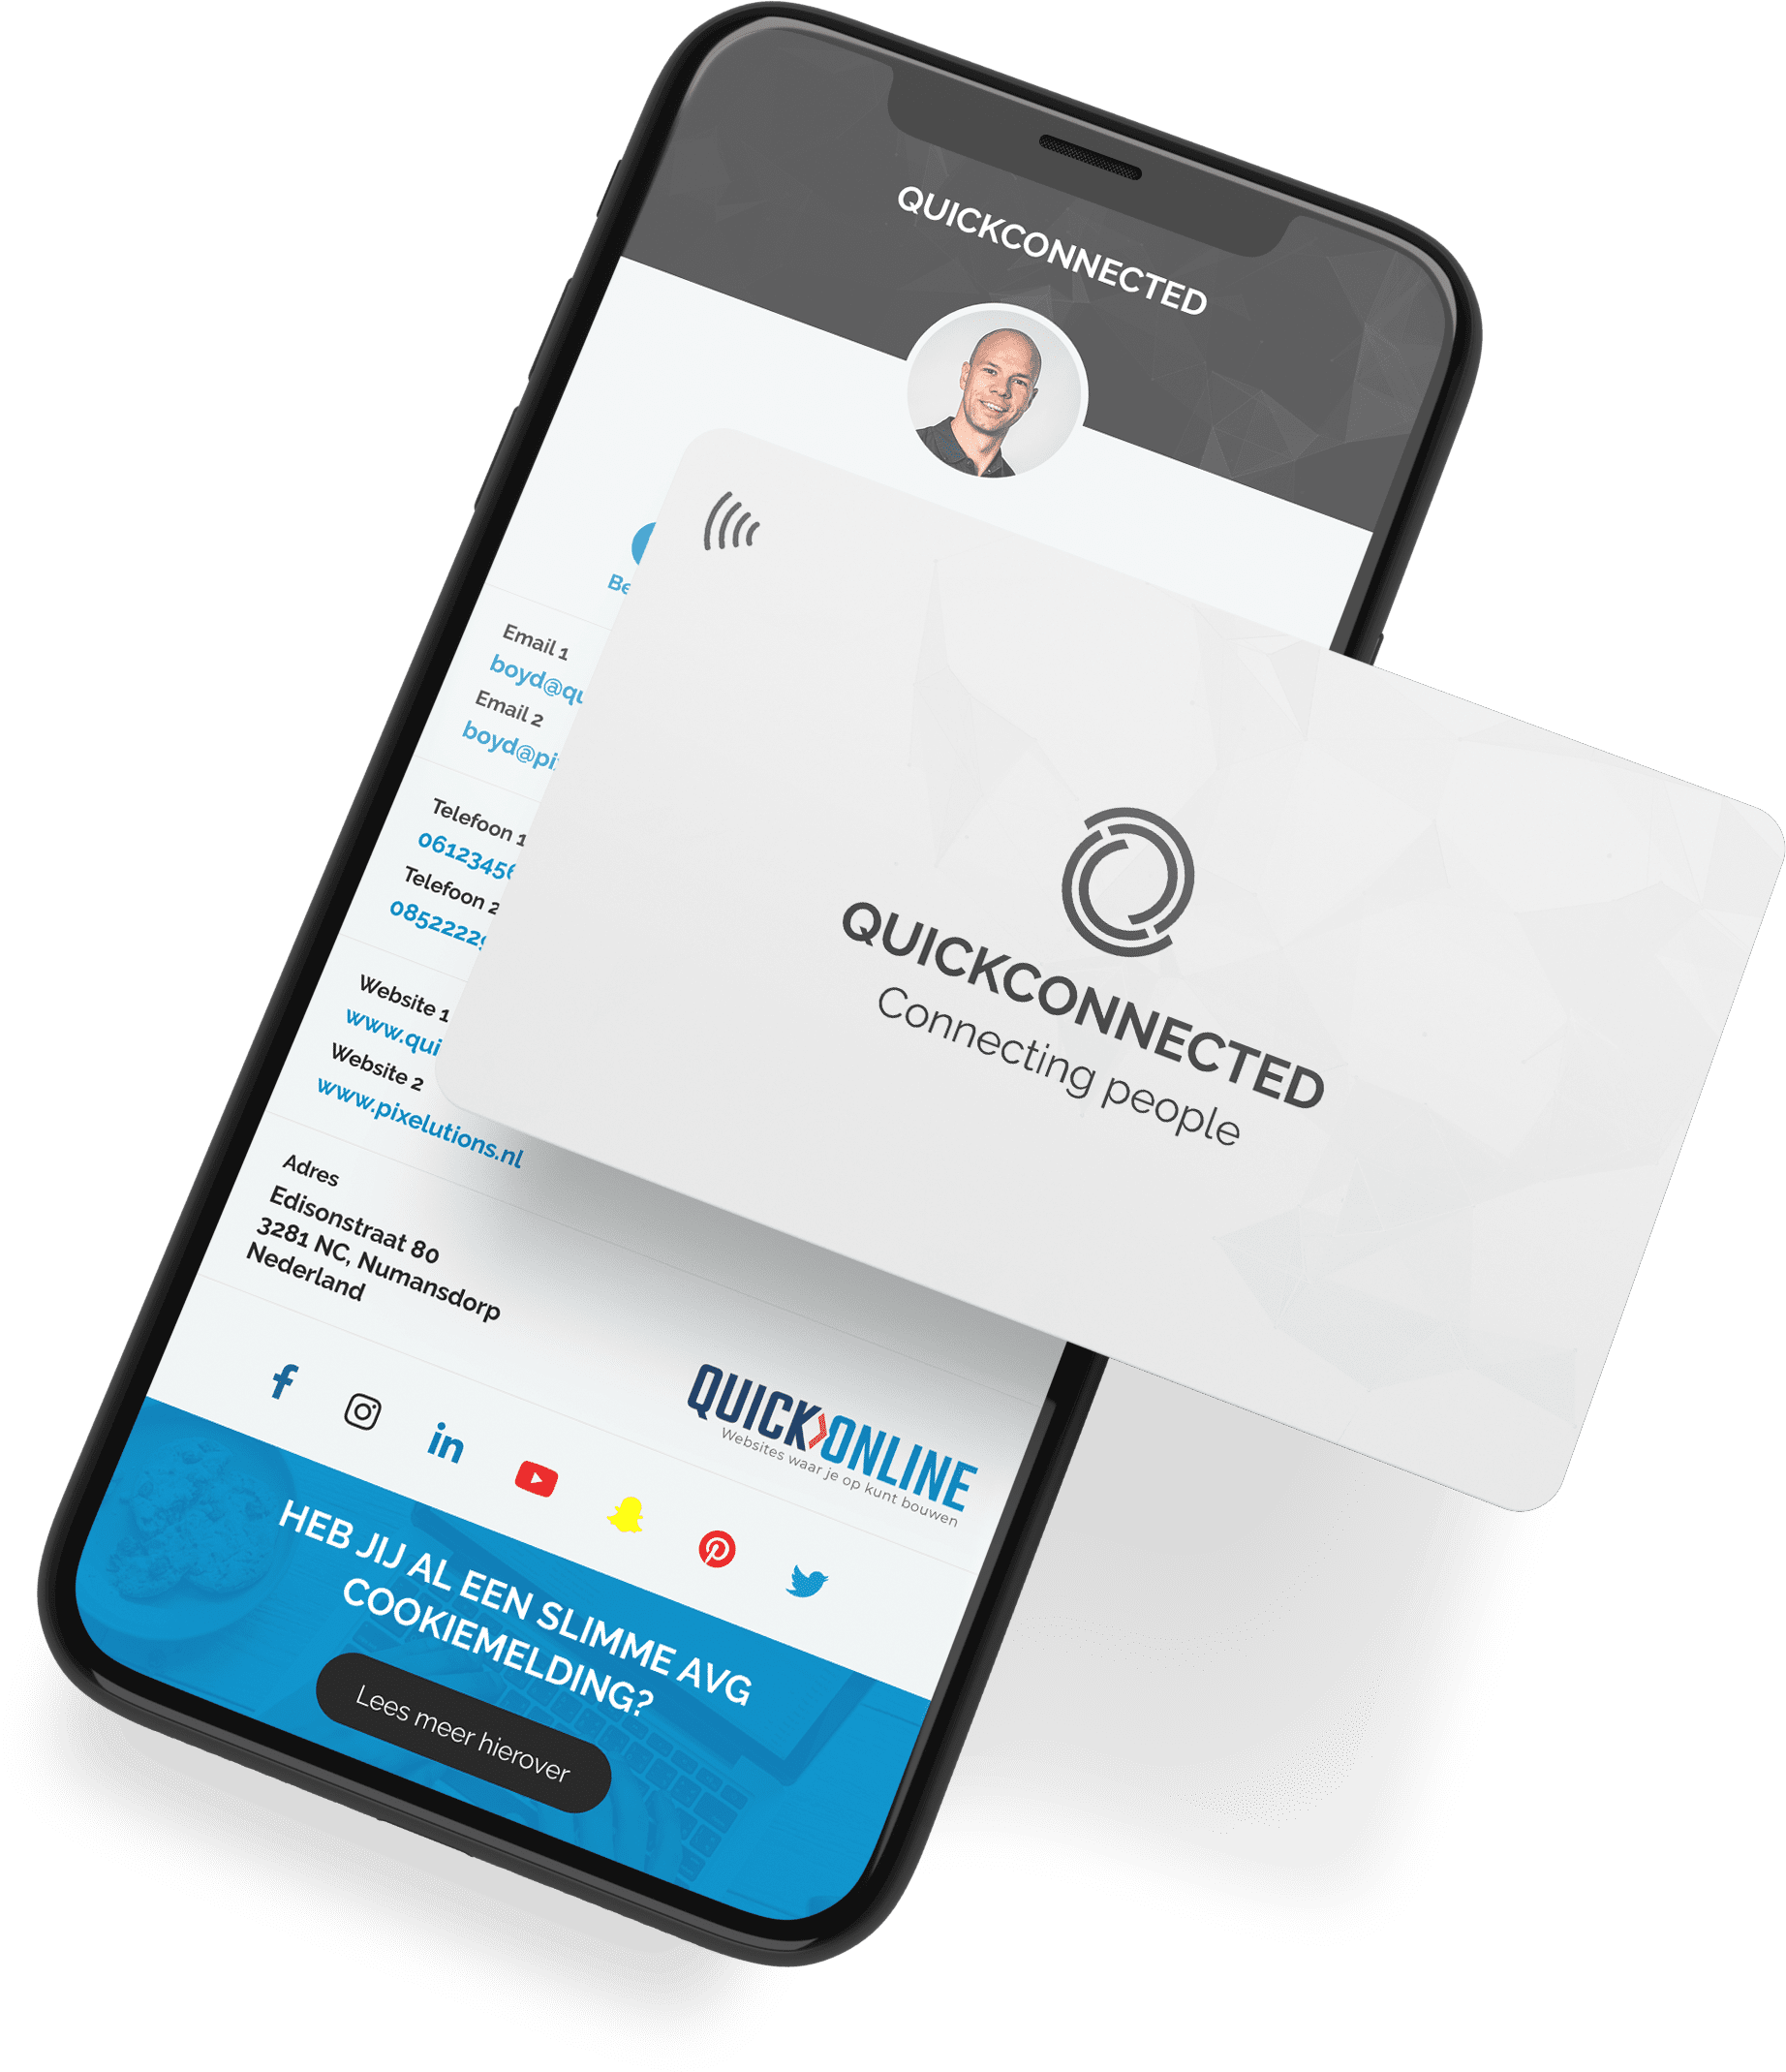 QuickConnected business card nfc